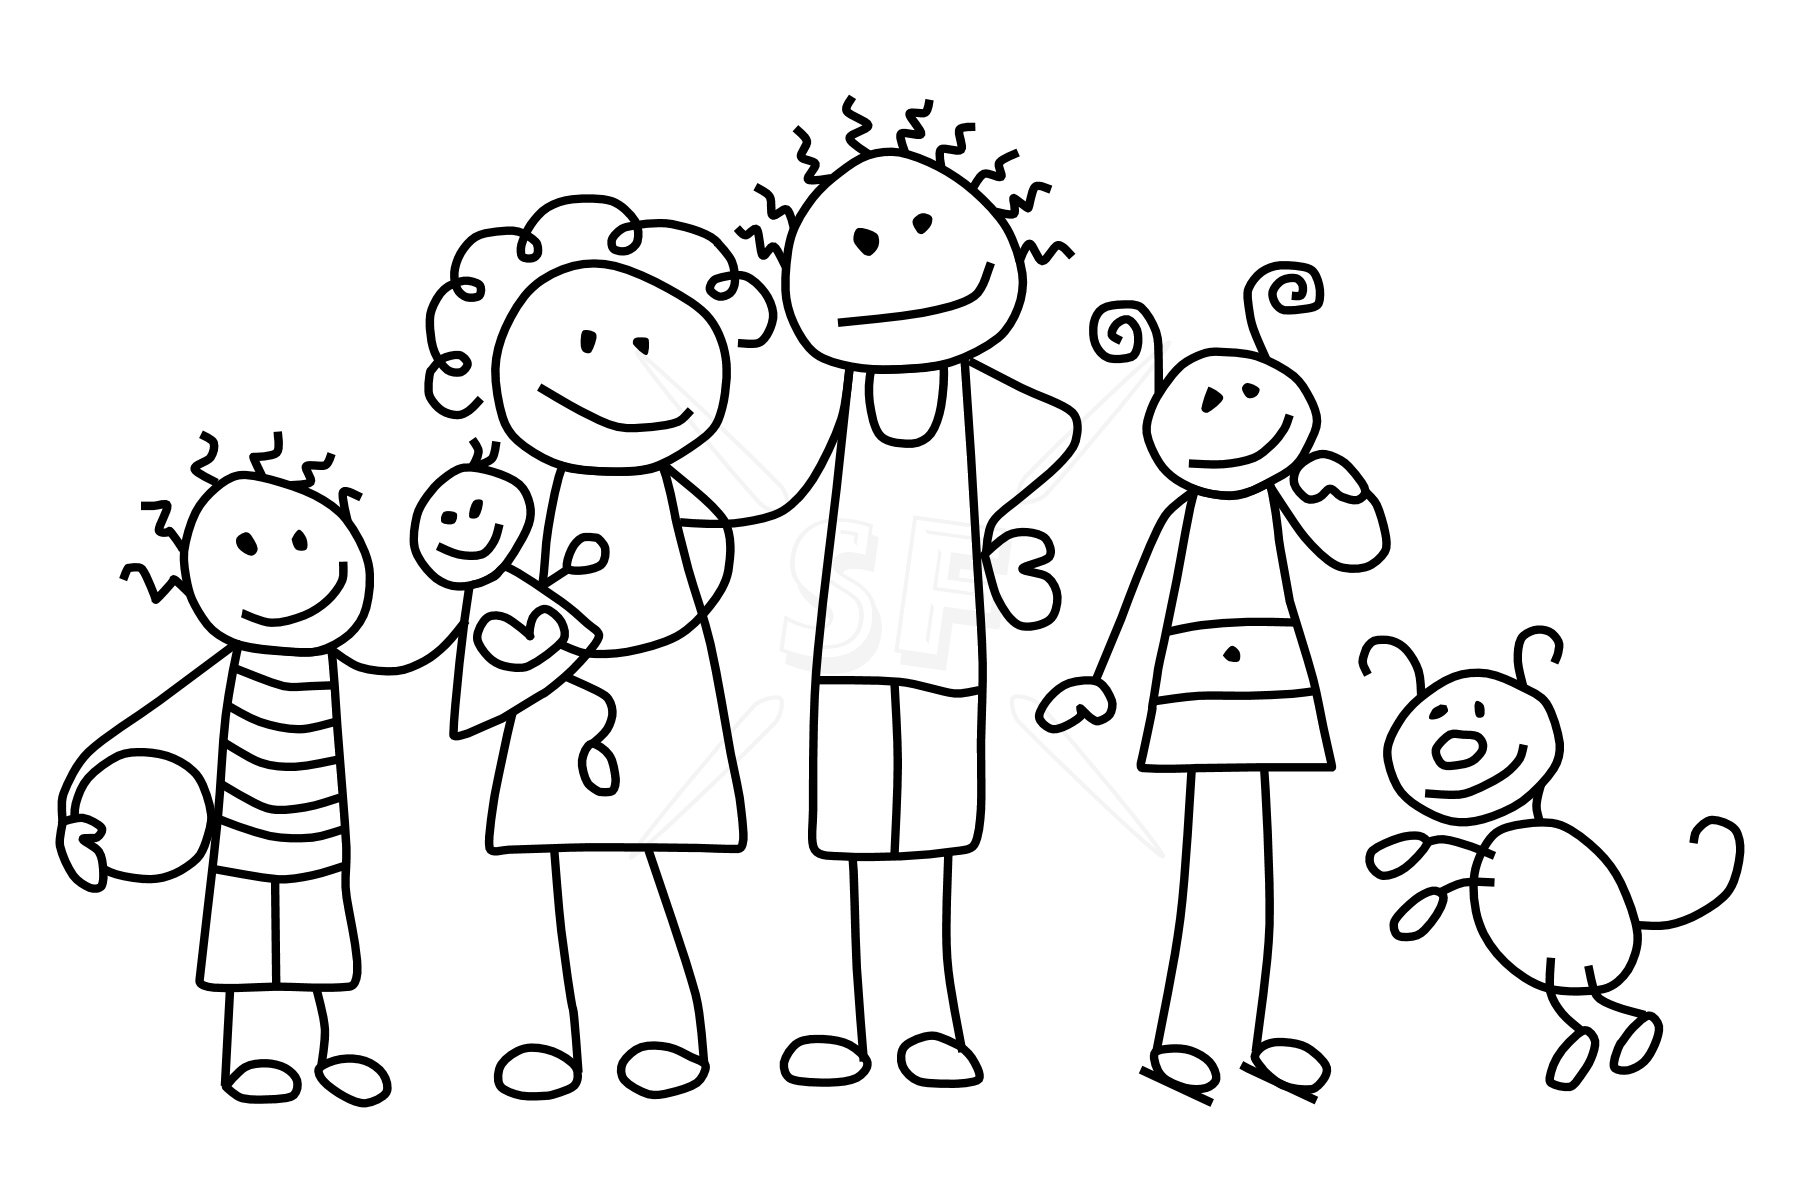 Clip Art Free Stick Figure Clip Art clip art stick figure family clipart kid member mix n match figures clip